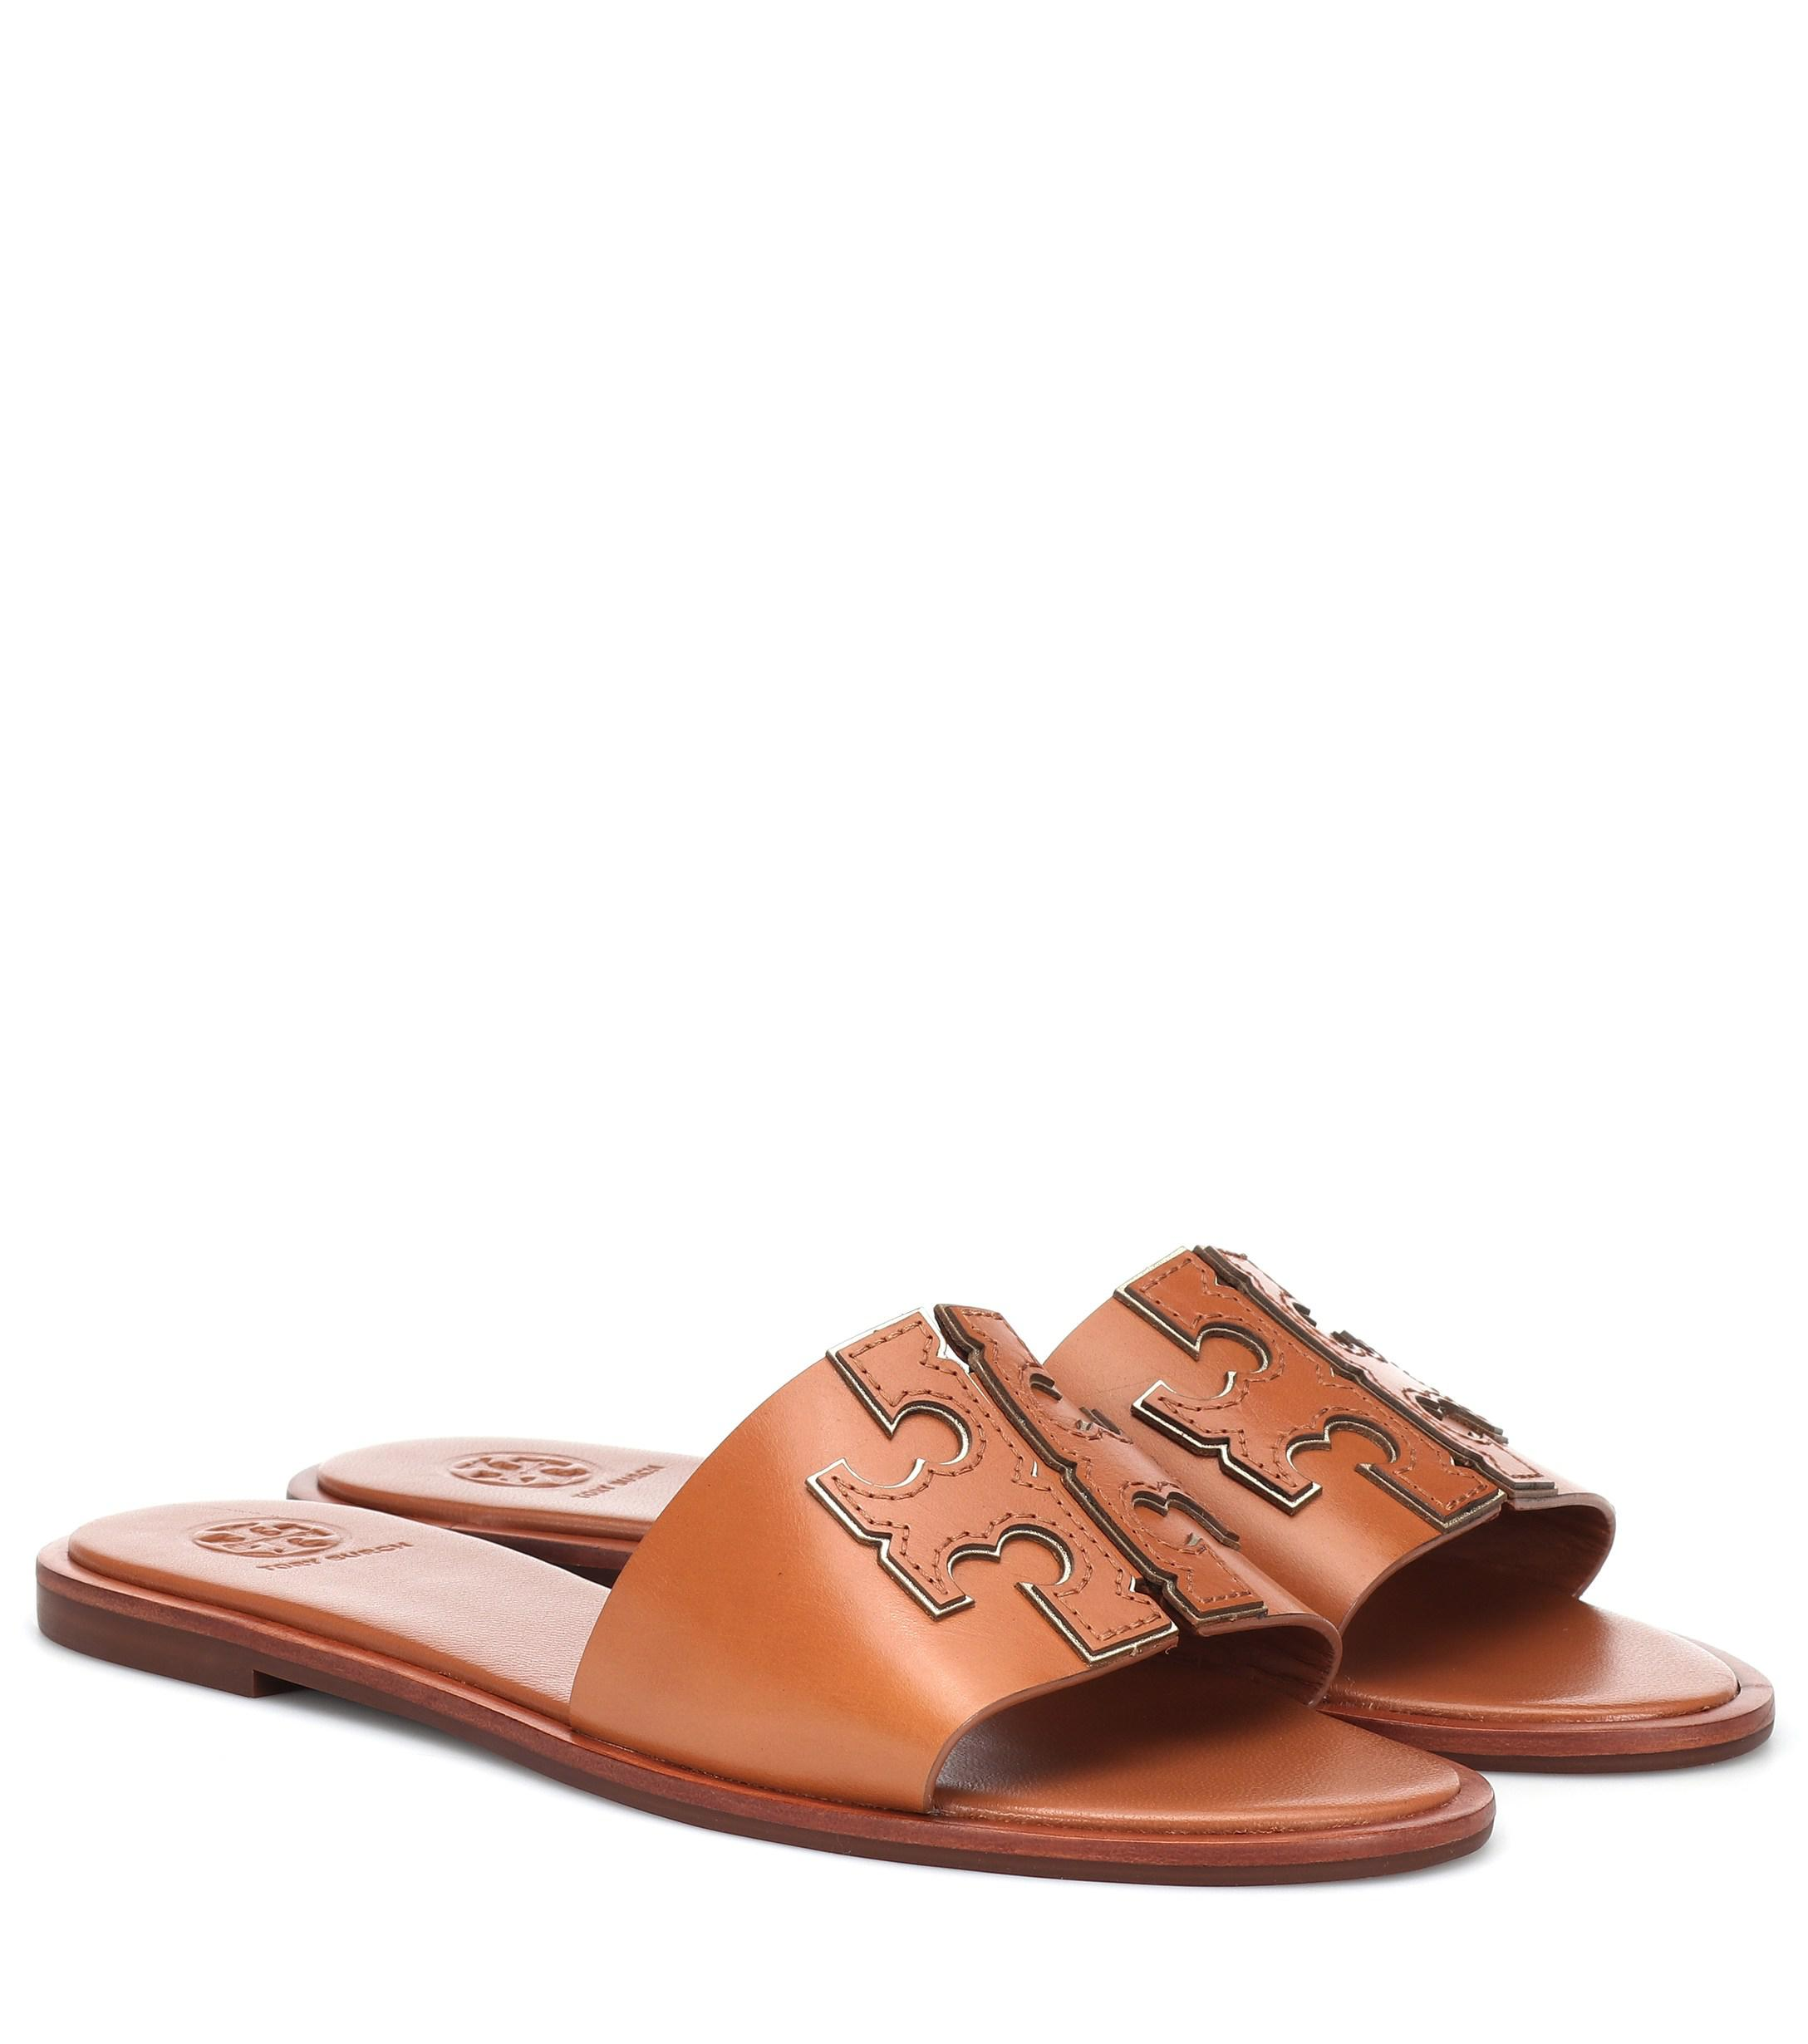 0befa07a0 Lyst - Tory Burch Ines Slides in Brown - Save 14%